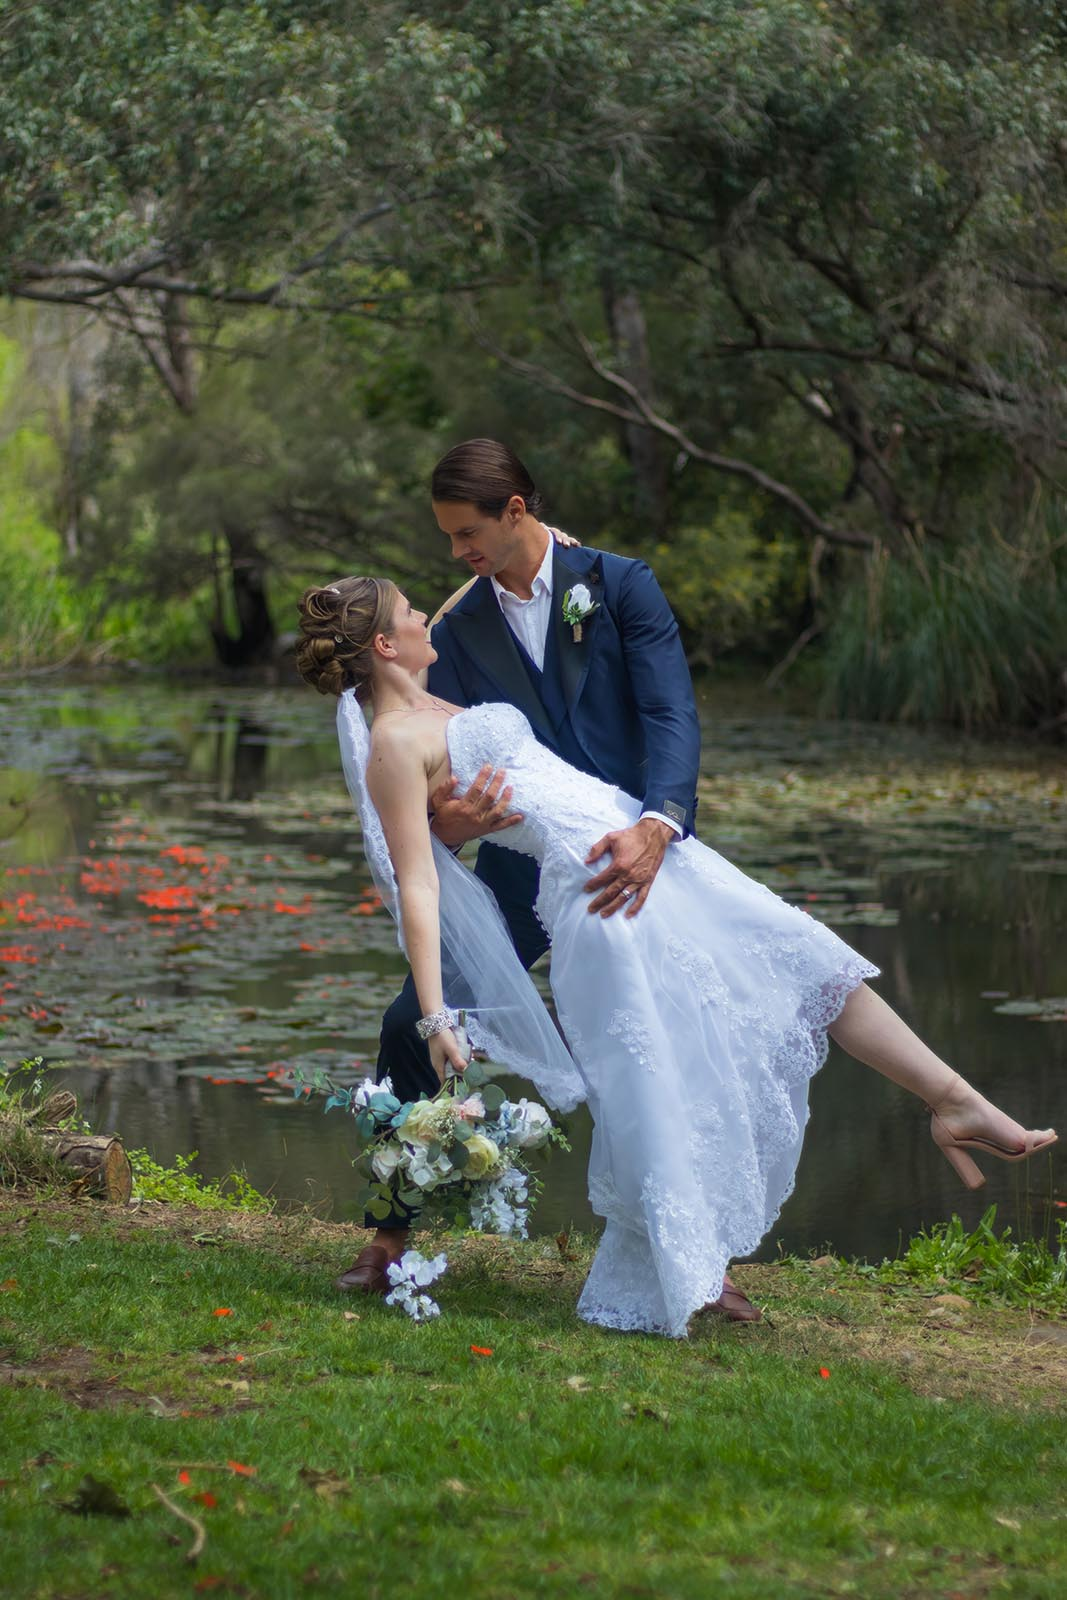 Groom holding his bride in a dip by the river